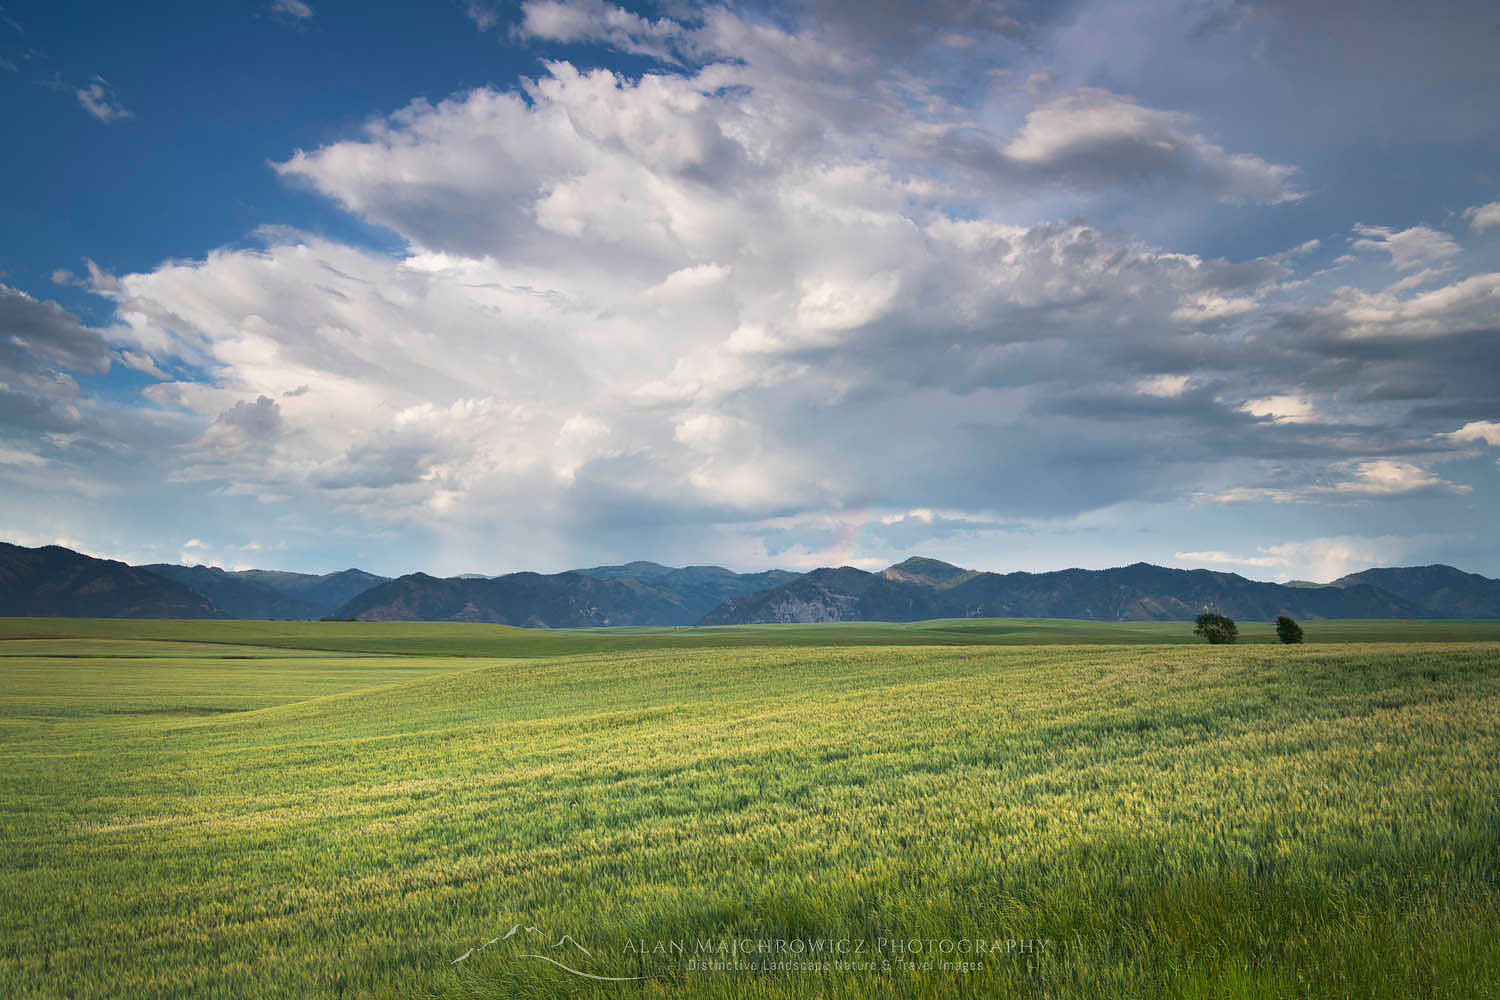 Snake River Plains Wheat Fields near Swan Valley, Idaho